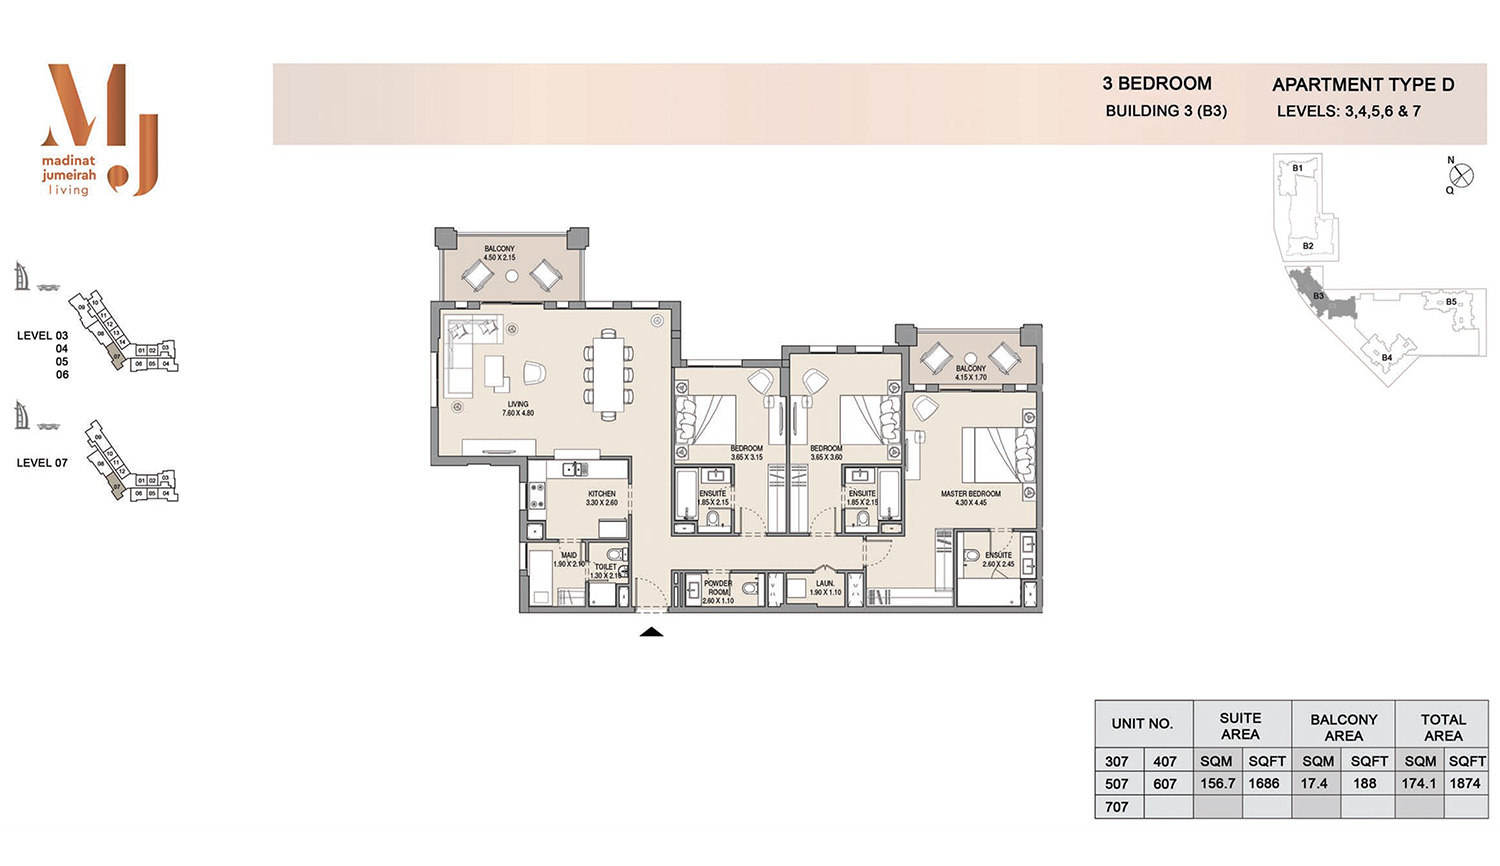 Building3 3 Bedroom, Type D, Levels 3 to 7, Size 1874 sq.ft